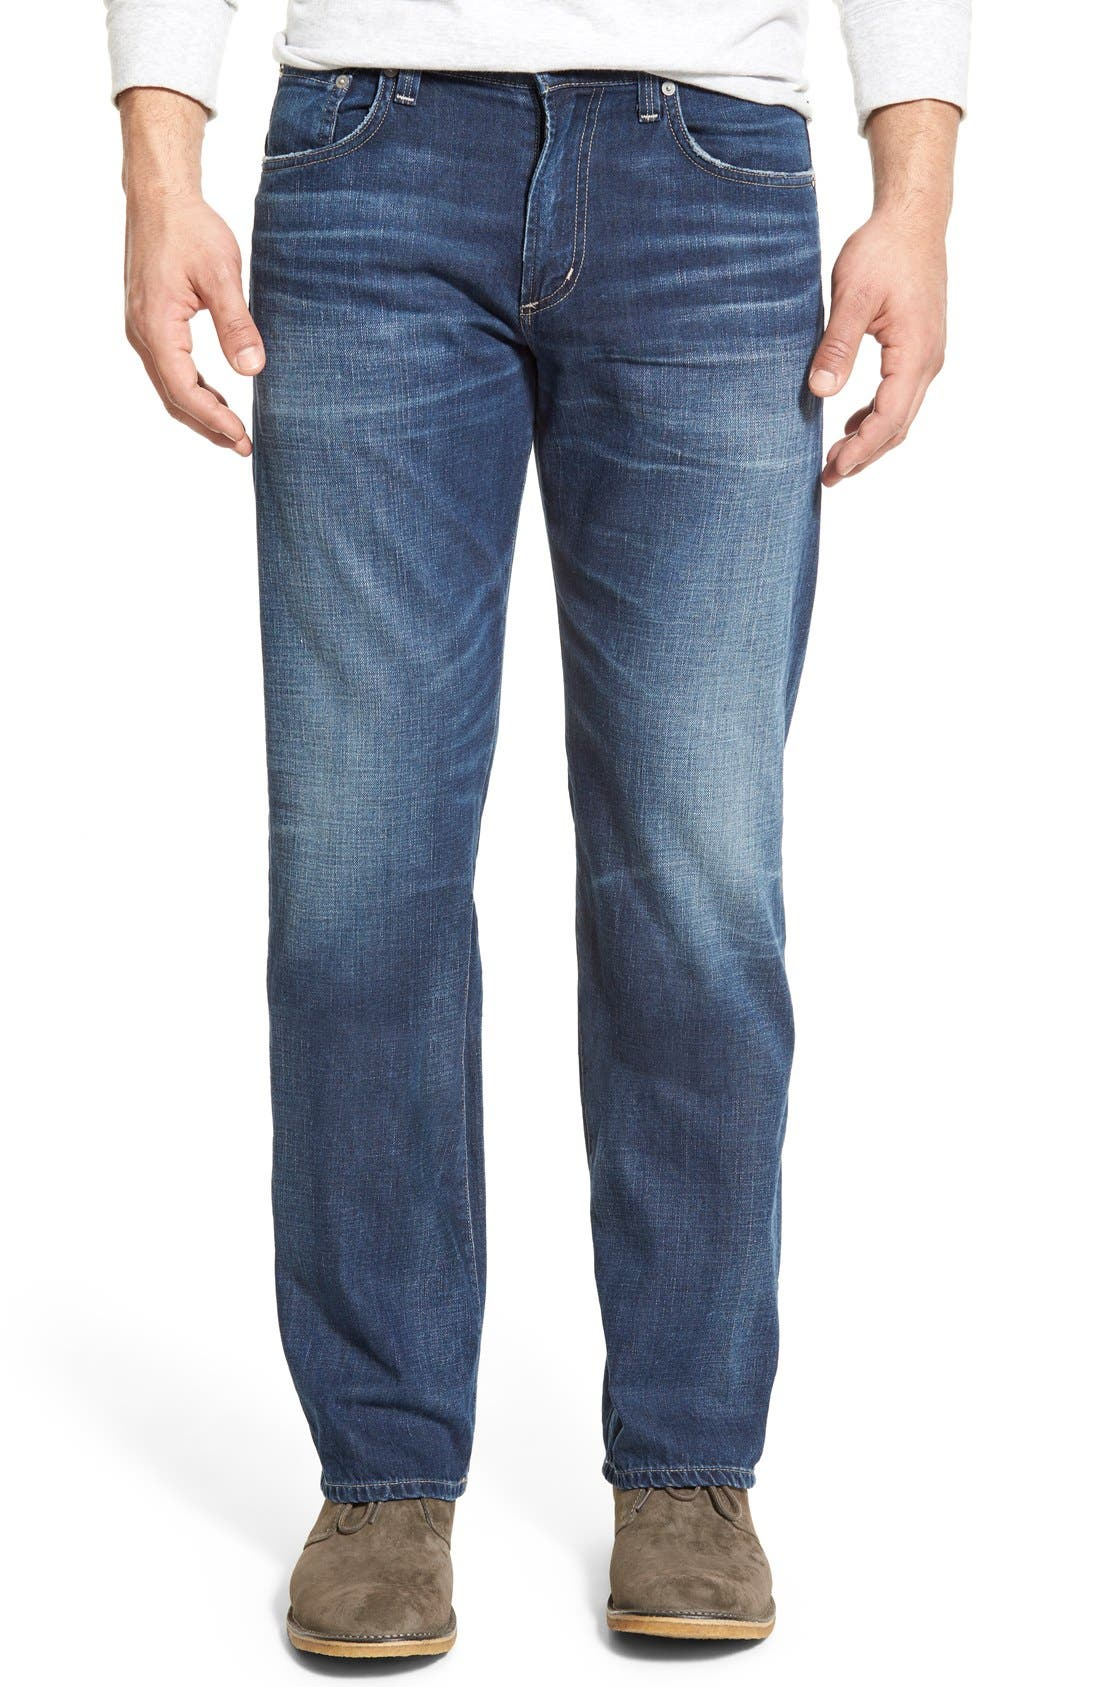 Alternate Image 1 Selected - Citizens of Humanity 'Evans' Relaxed Fit Jeans (Derby)